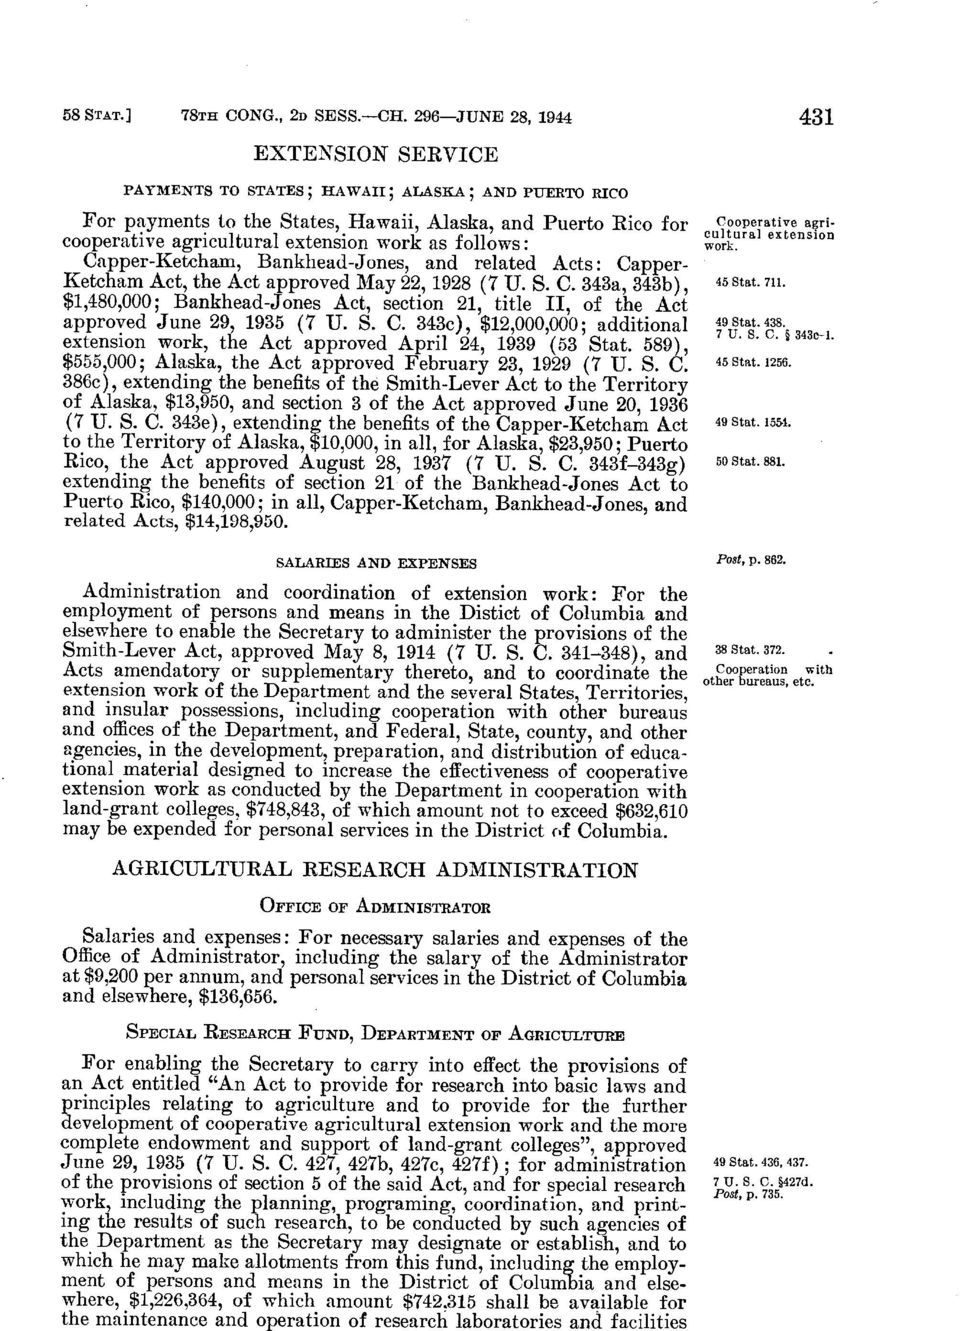 as follows Capper-Ketcham, Bankhead-Jones, and related Acts : Capper- Ketcham Act, the Act approved May 22, 1928 (7 U. S. C. 343a, 343b), $1,480,000 ; Bankhead-Jones Act, section 21, title II, of the Act approved June 29, 1935 (7 U.